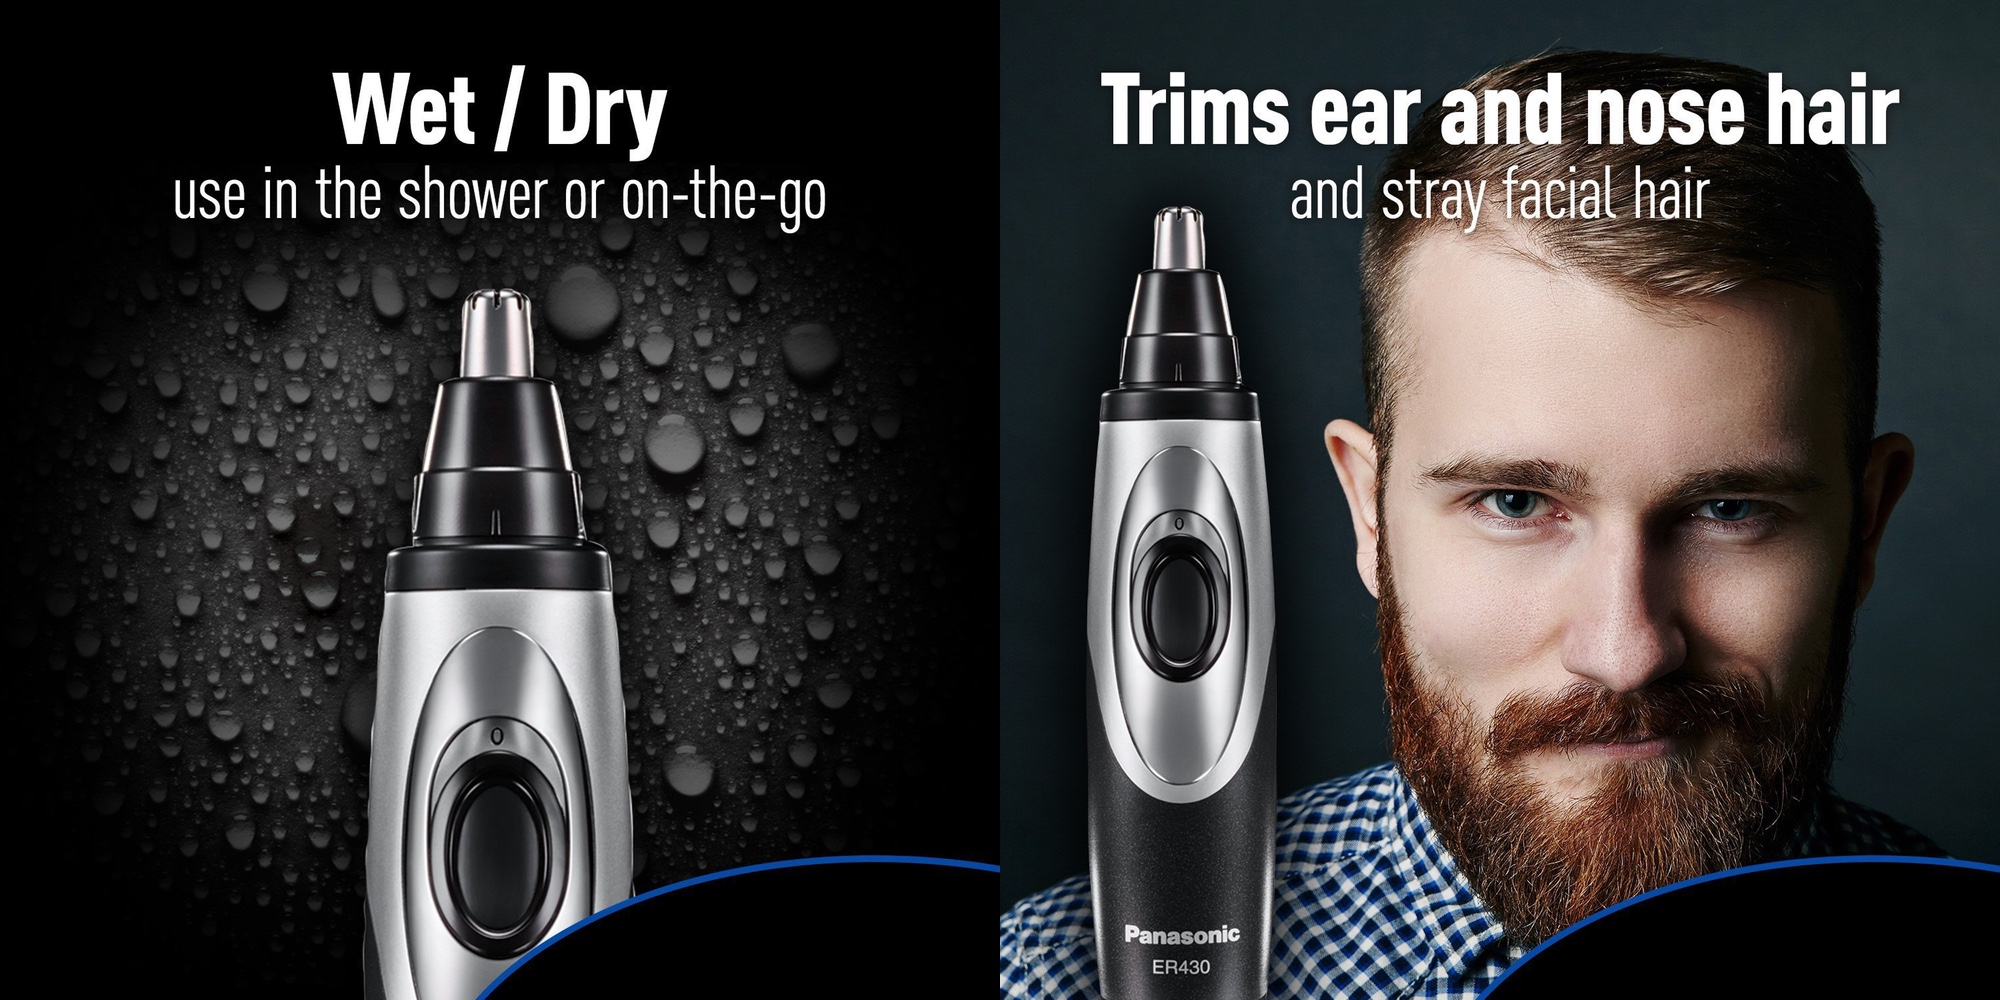 Bring home the popular Panasonic Ear & Nose Trimmer for just $11 shipped (up to 40% off)